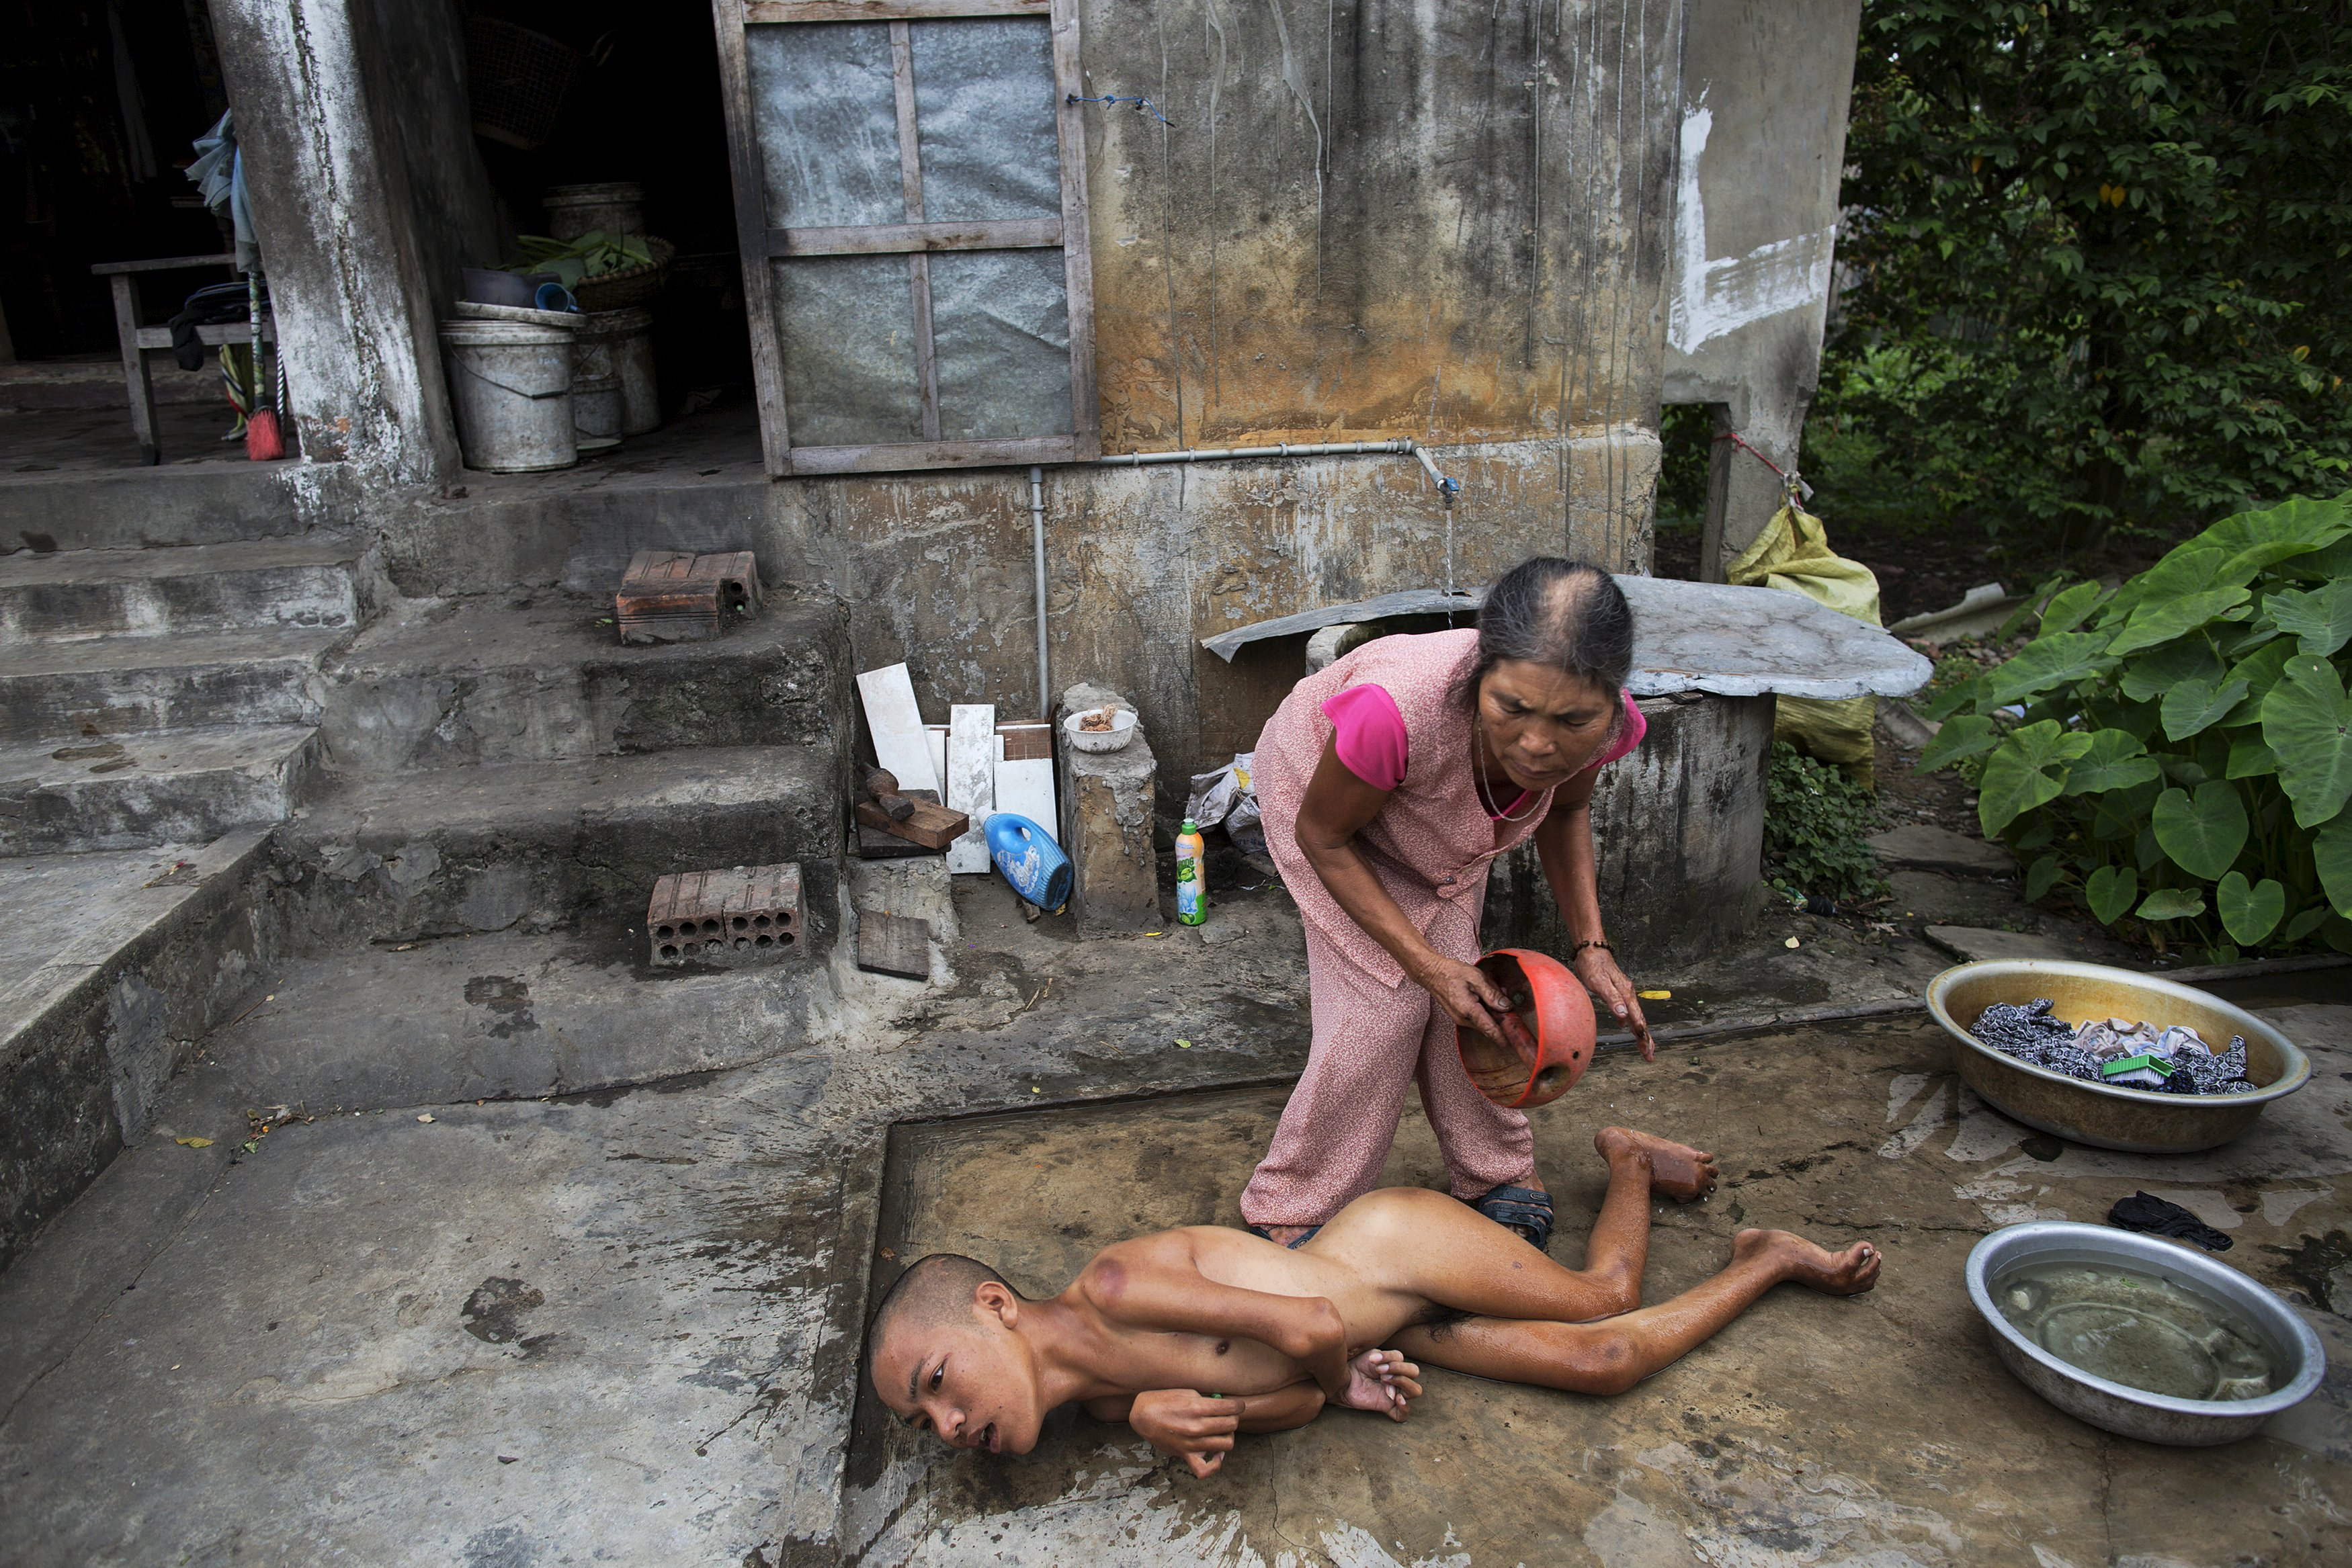 Tang Thi Thang baths her disabled son Doan Van Quy outside their family home in Truc Ly, in Vietnam's Quang Binh Province April 11, 2015. Doan Van Quy's father, a soldier who served on 12.7 mm anti-aircraft guns during the Vietnam War, said he lived in several areas that were contaminated by Agent Orange. Two of his sons were born with serious health problems and the family and local health officials link their illnesses to their father's exposure to Agent Orange.